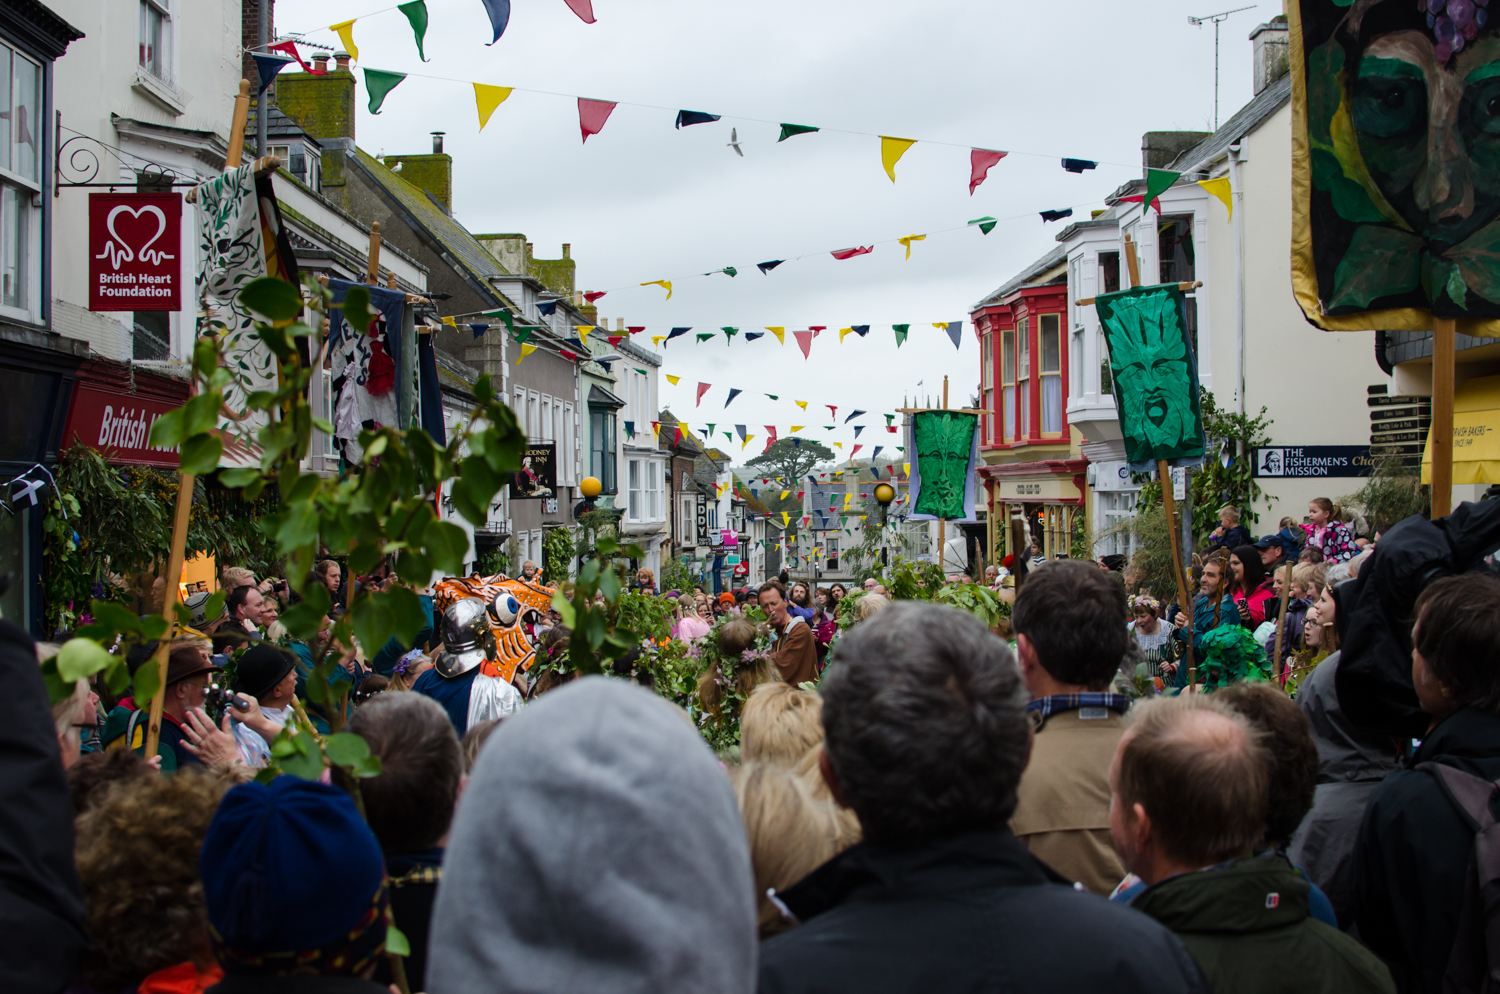 The main town full of people in Helston